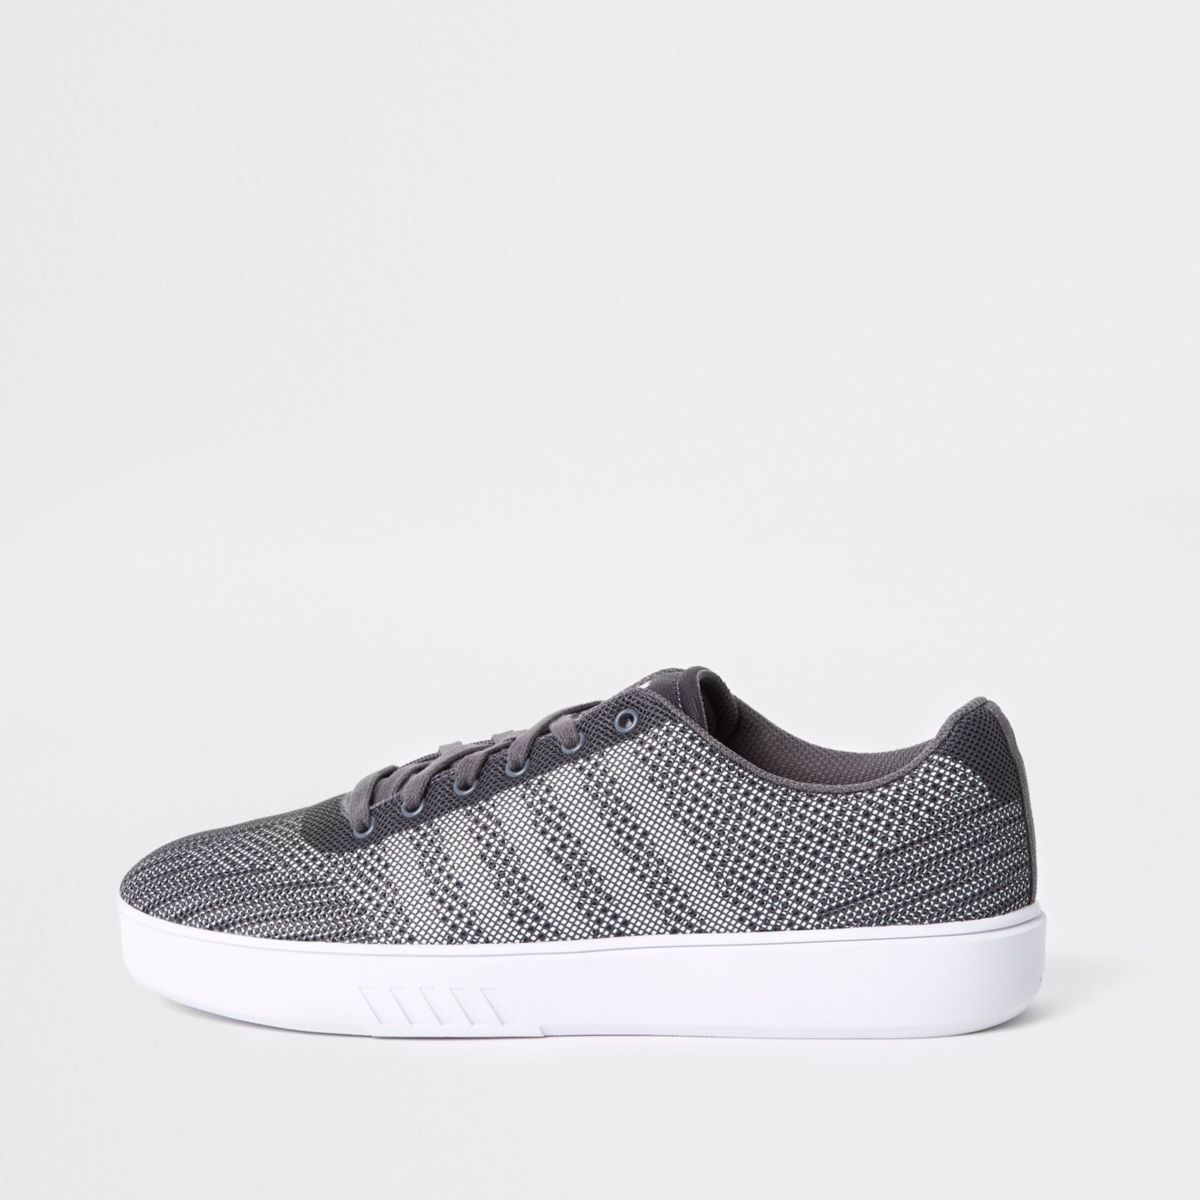 K-Swiss grey mesh sneakers